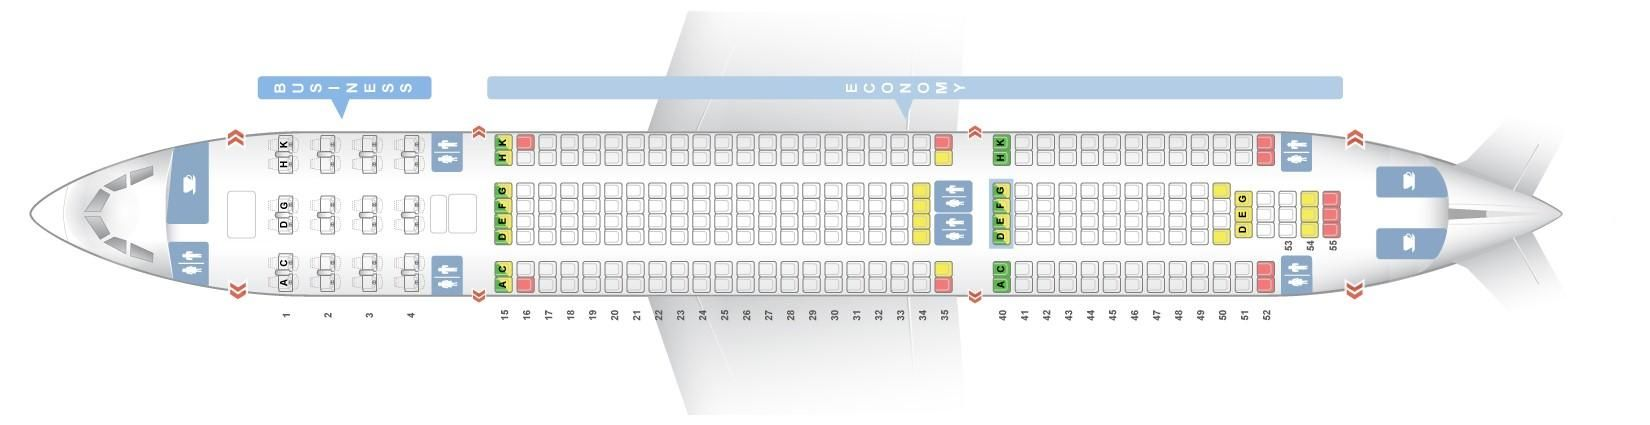 Air Europa Fleet Airbus A330 200 Details And Pictures Dengan